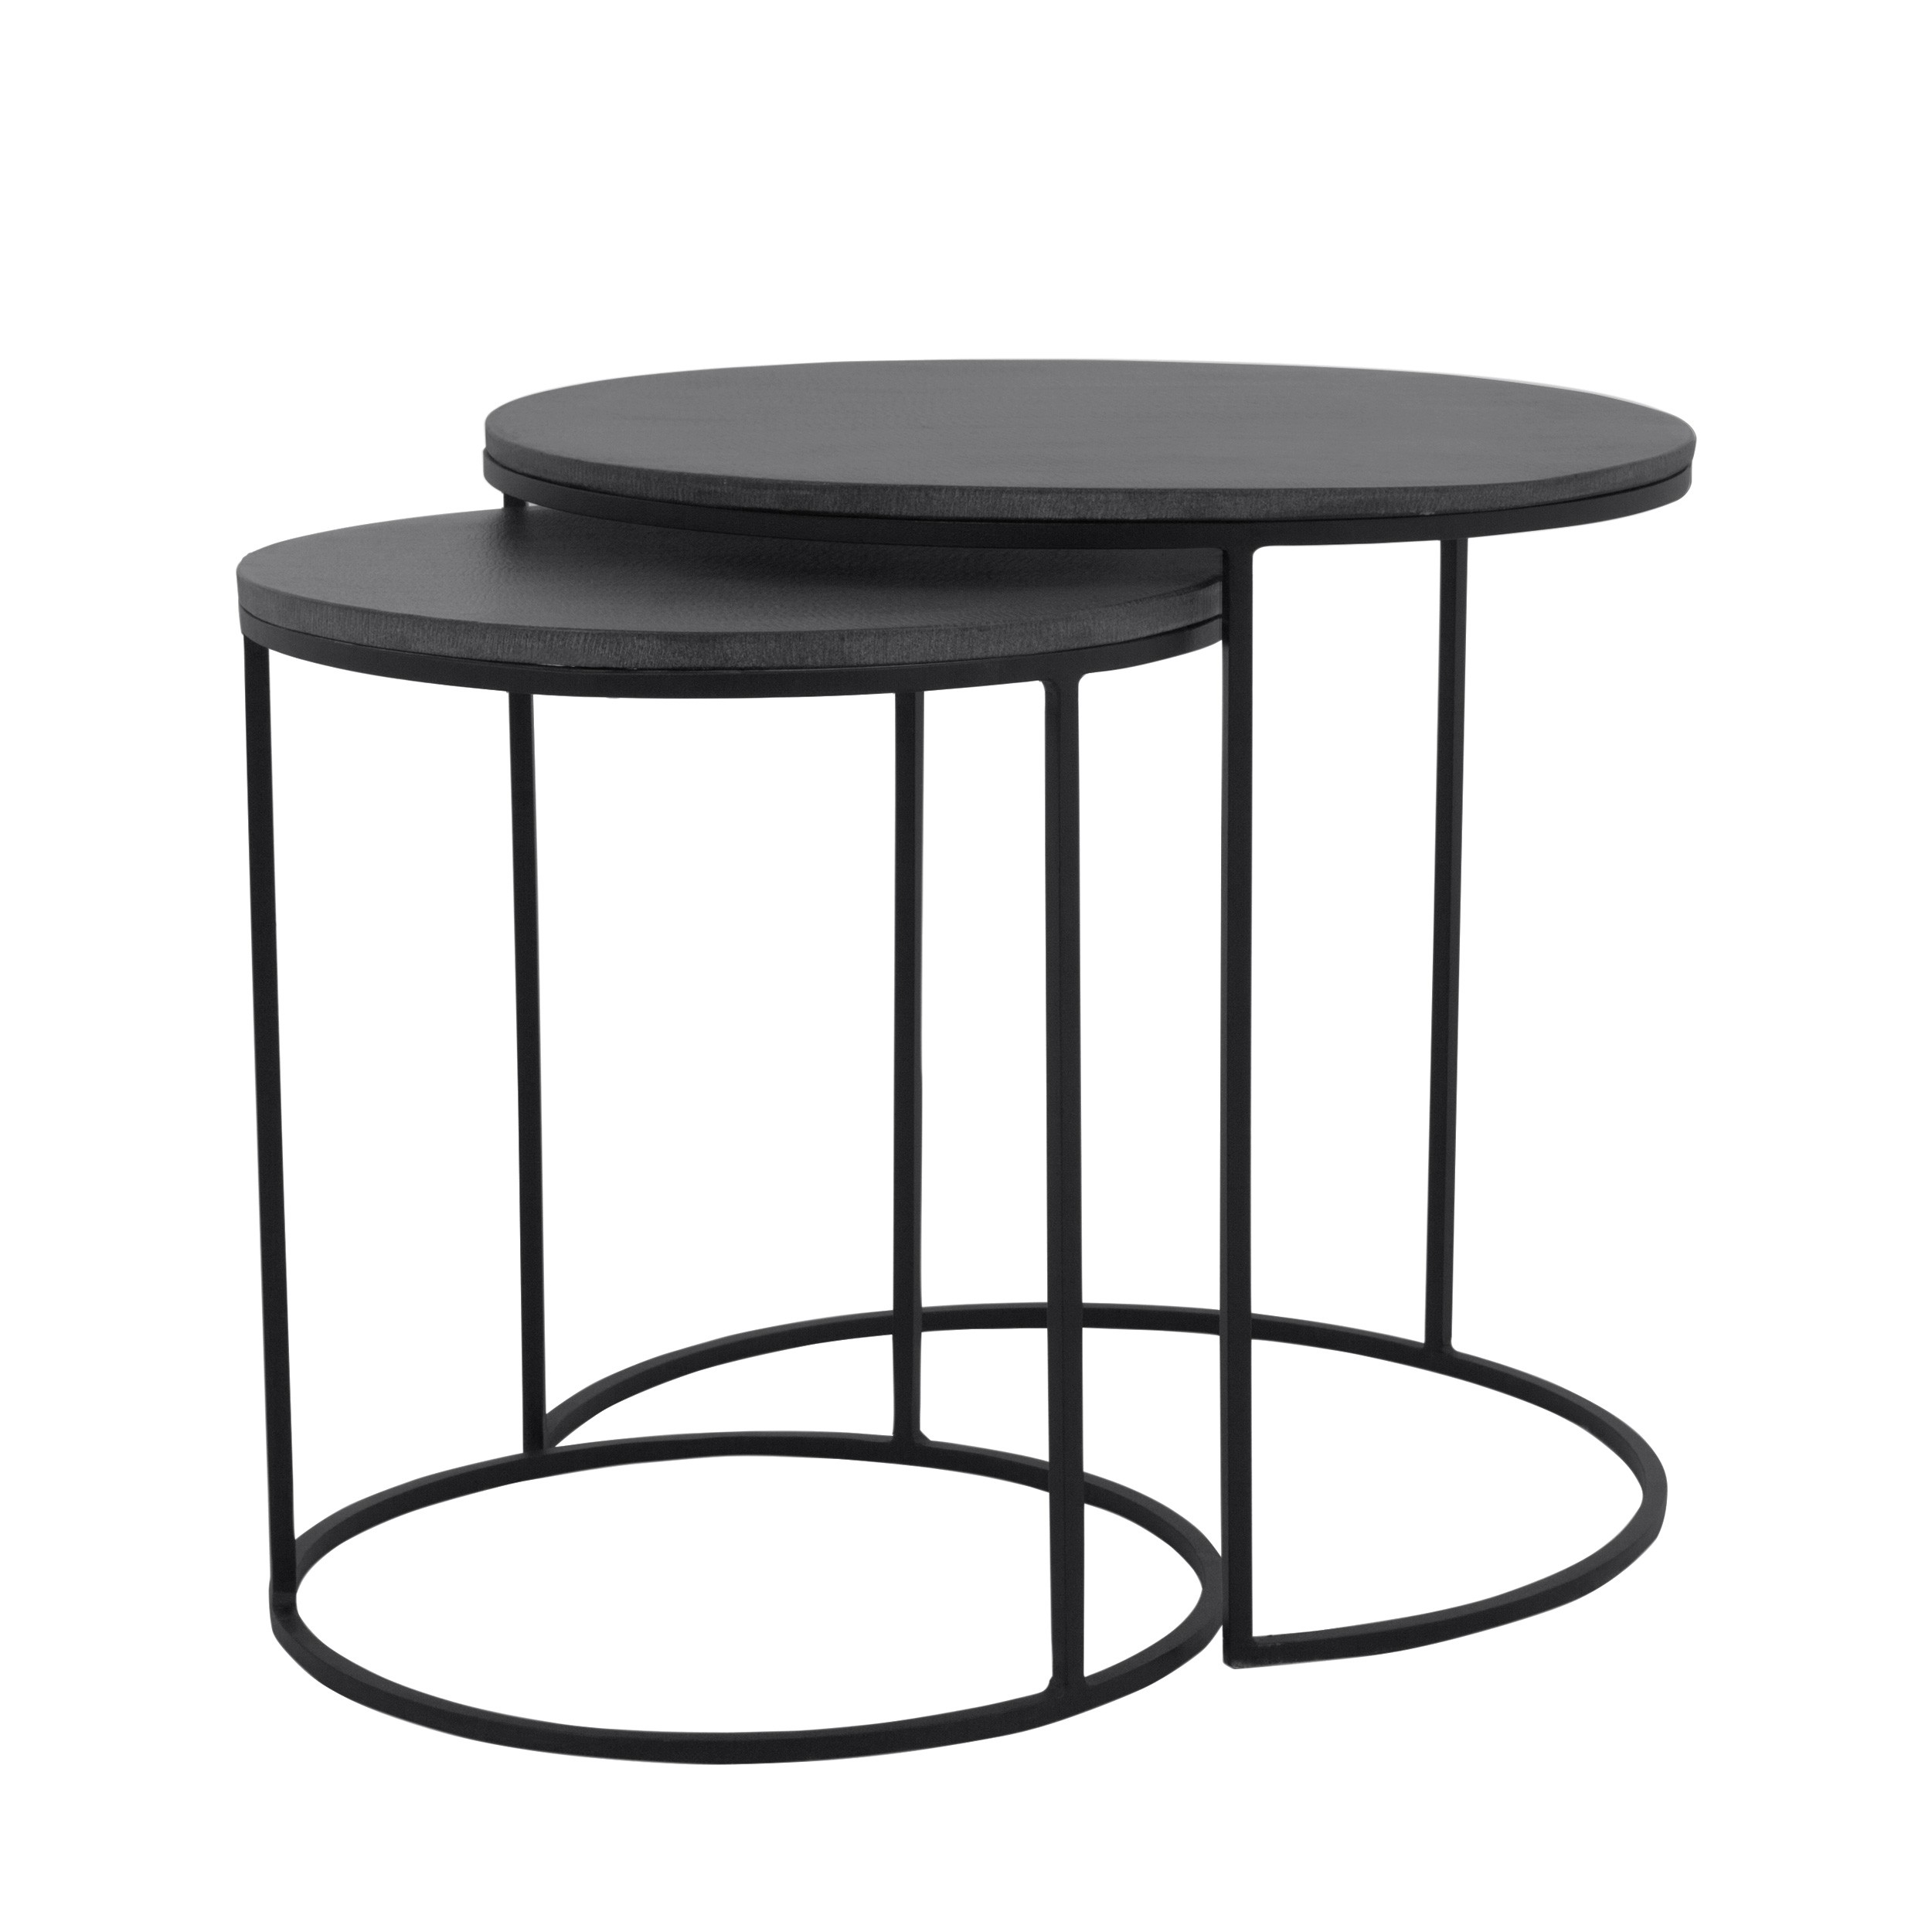 table basse gigogne ronde toba lavastone lot de 2 achetez nos tables basses gigognes rondes. Black Bedroom Furniture Sets. Home Design Ideas